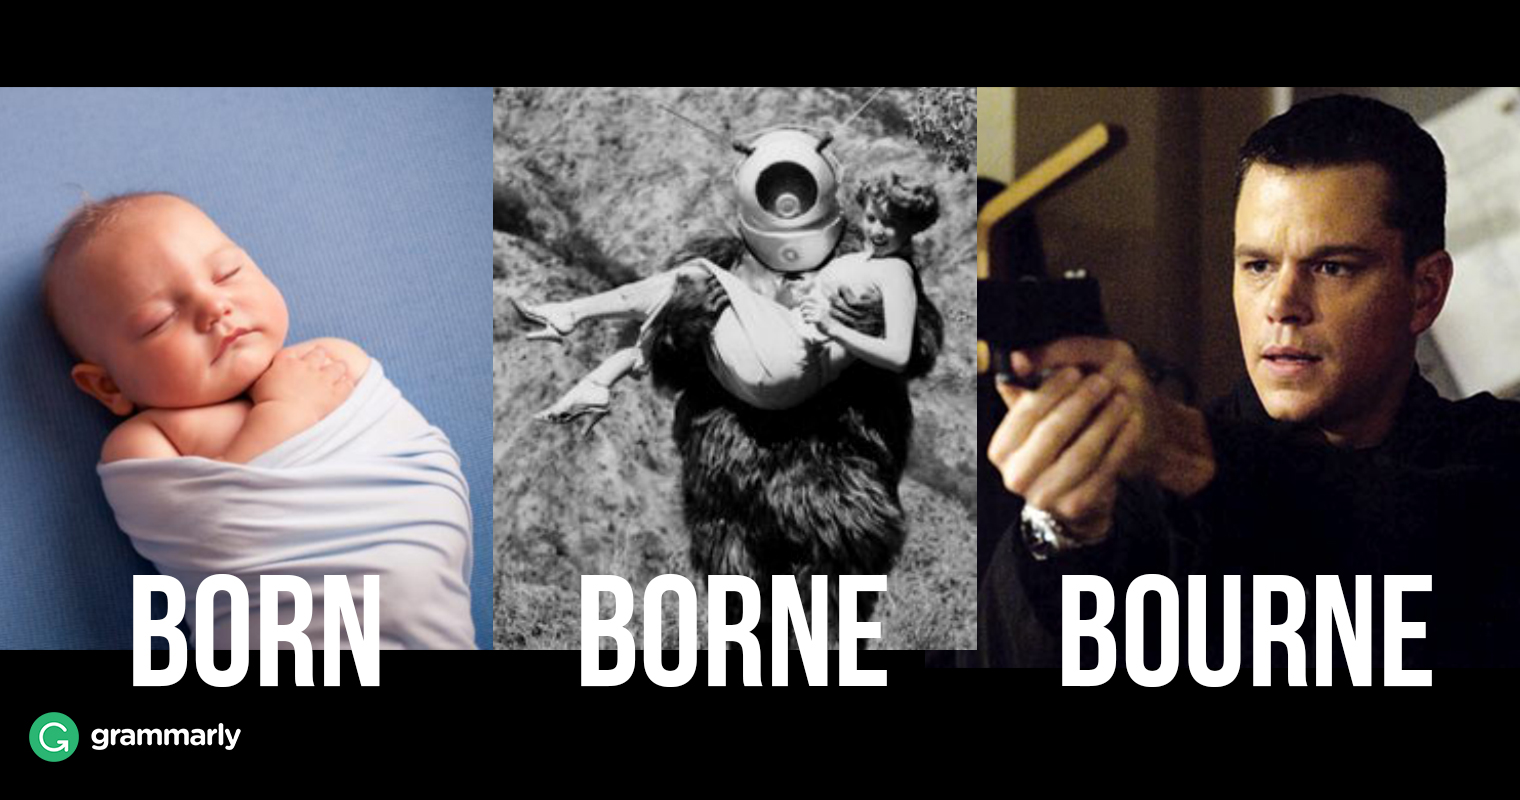 Born vs. Borne